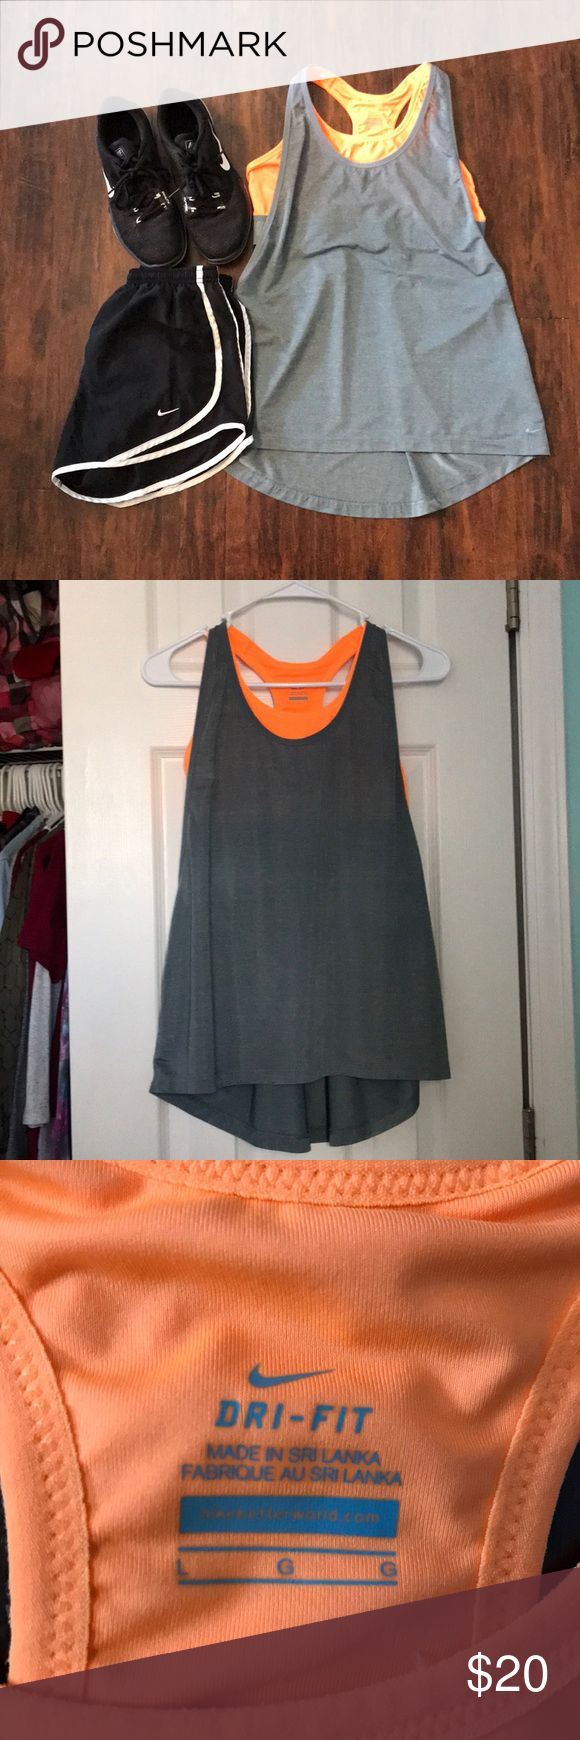 BOGO 1/2 OFF Nike sports bra tank top Grey dri-fit tank top with neon orange built-in sports bra, gently used, great condition ✨make an offer!✨ feel free to comment if you have any questions😊 ‼️ALL LISTINGS BUY ONE GET ONE HALF OFF❗️(of the two items, the less expensive item will be half off) just make a bundle and I'll re-price‼️ Nike Tops Tank Tops